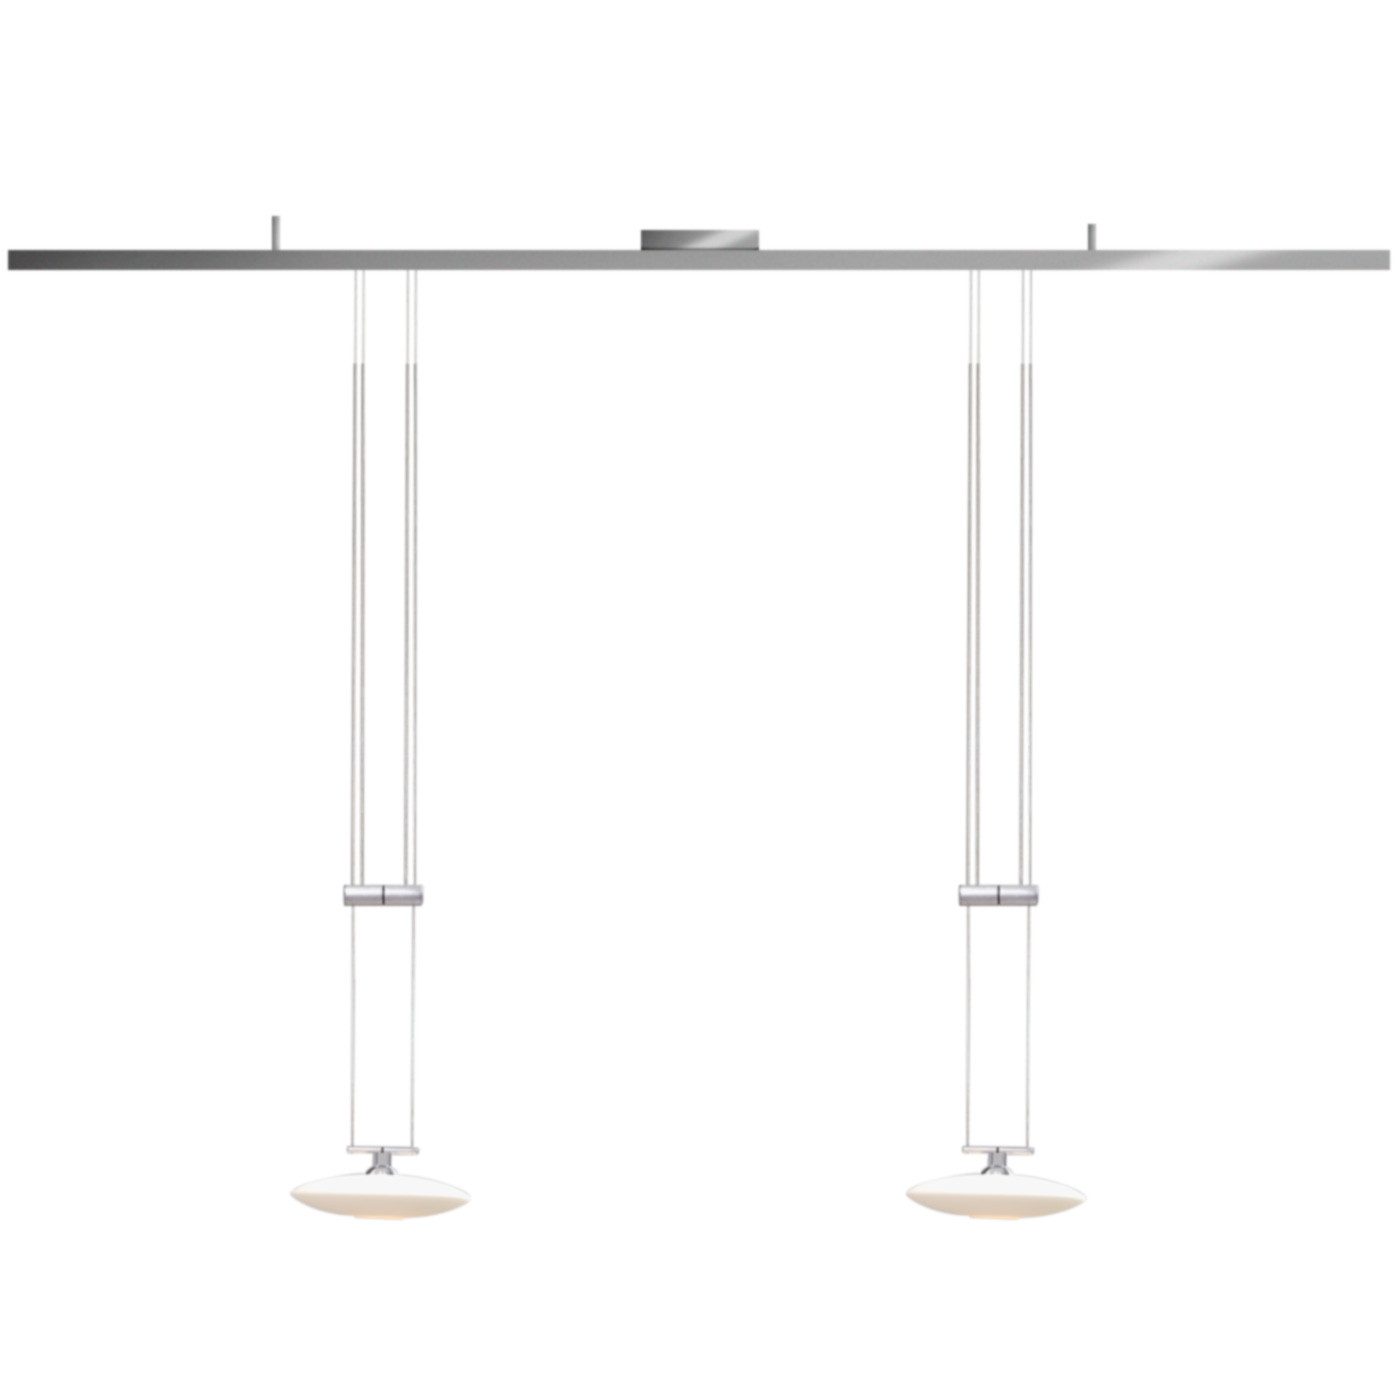 Glass Lamp Vector Ldm Vector Tavolo 2 Lunaled Grande Duo Pendant Lamp